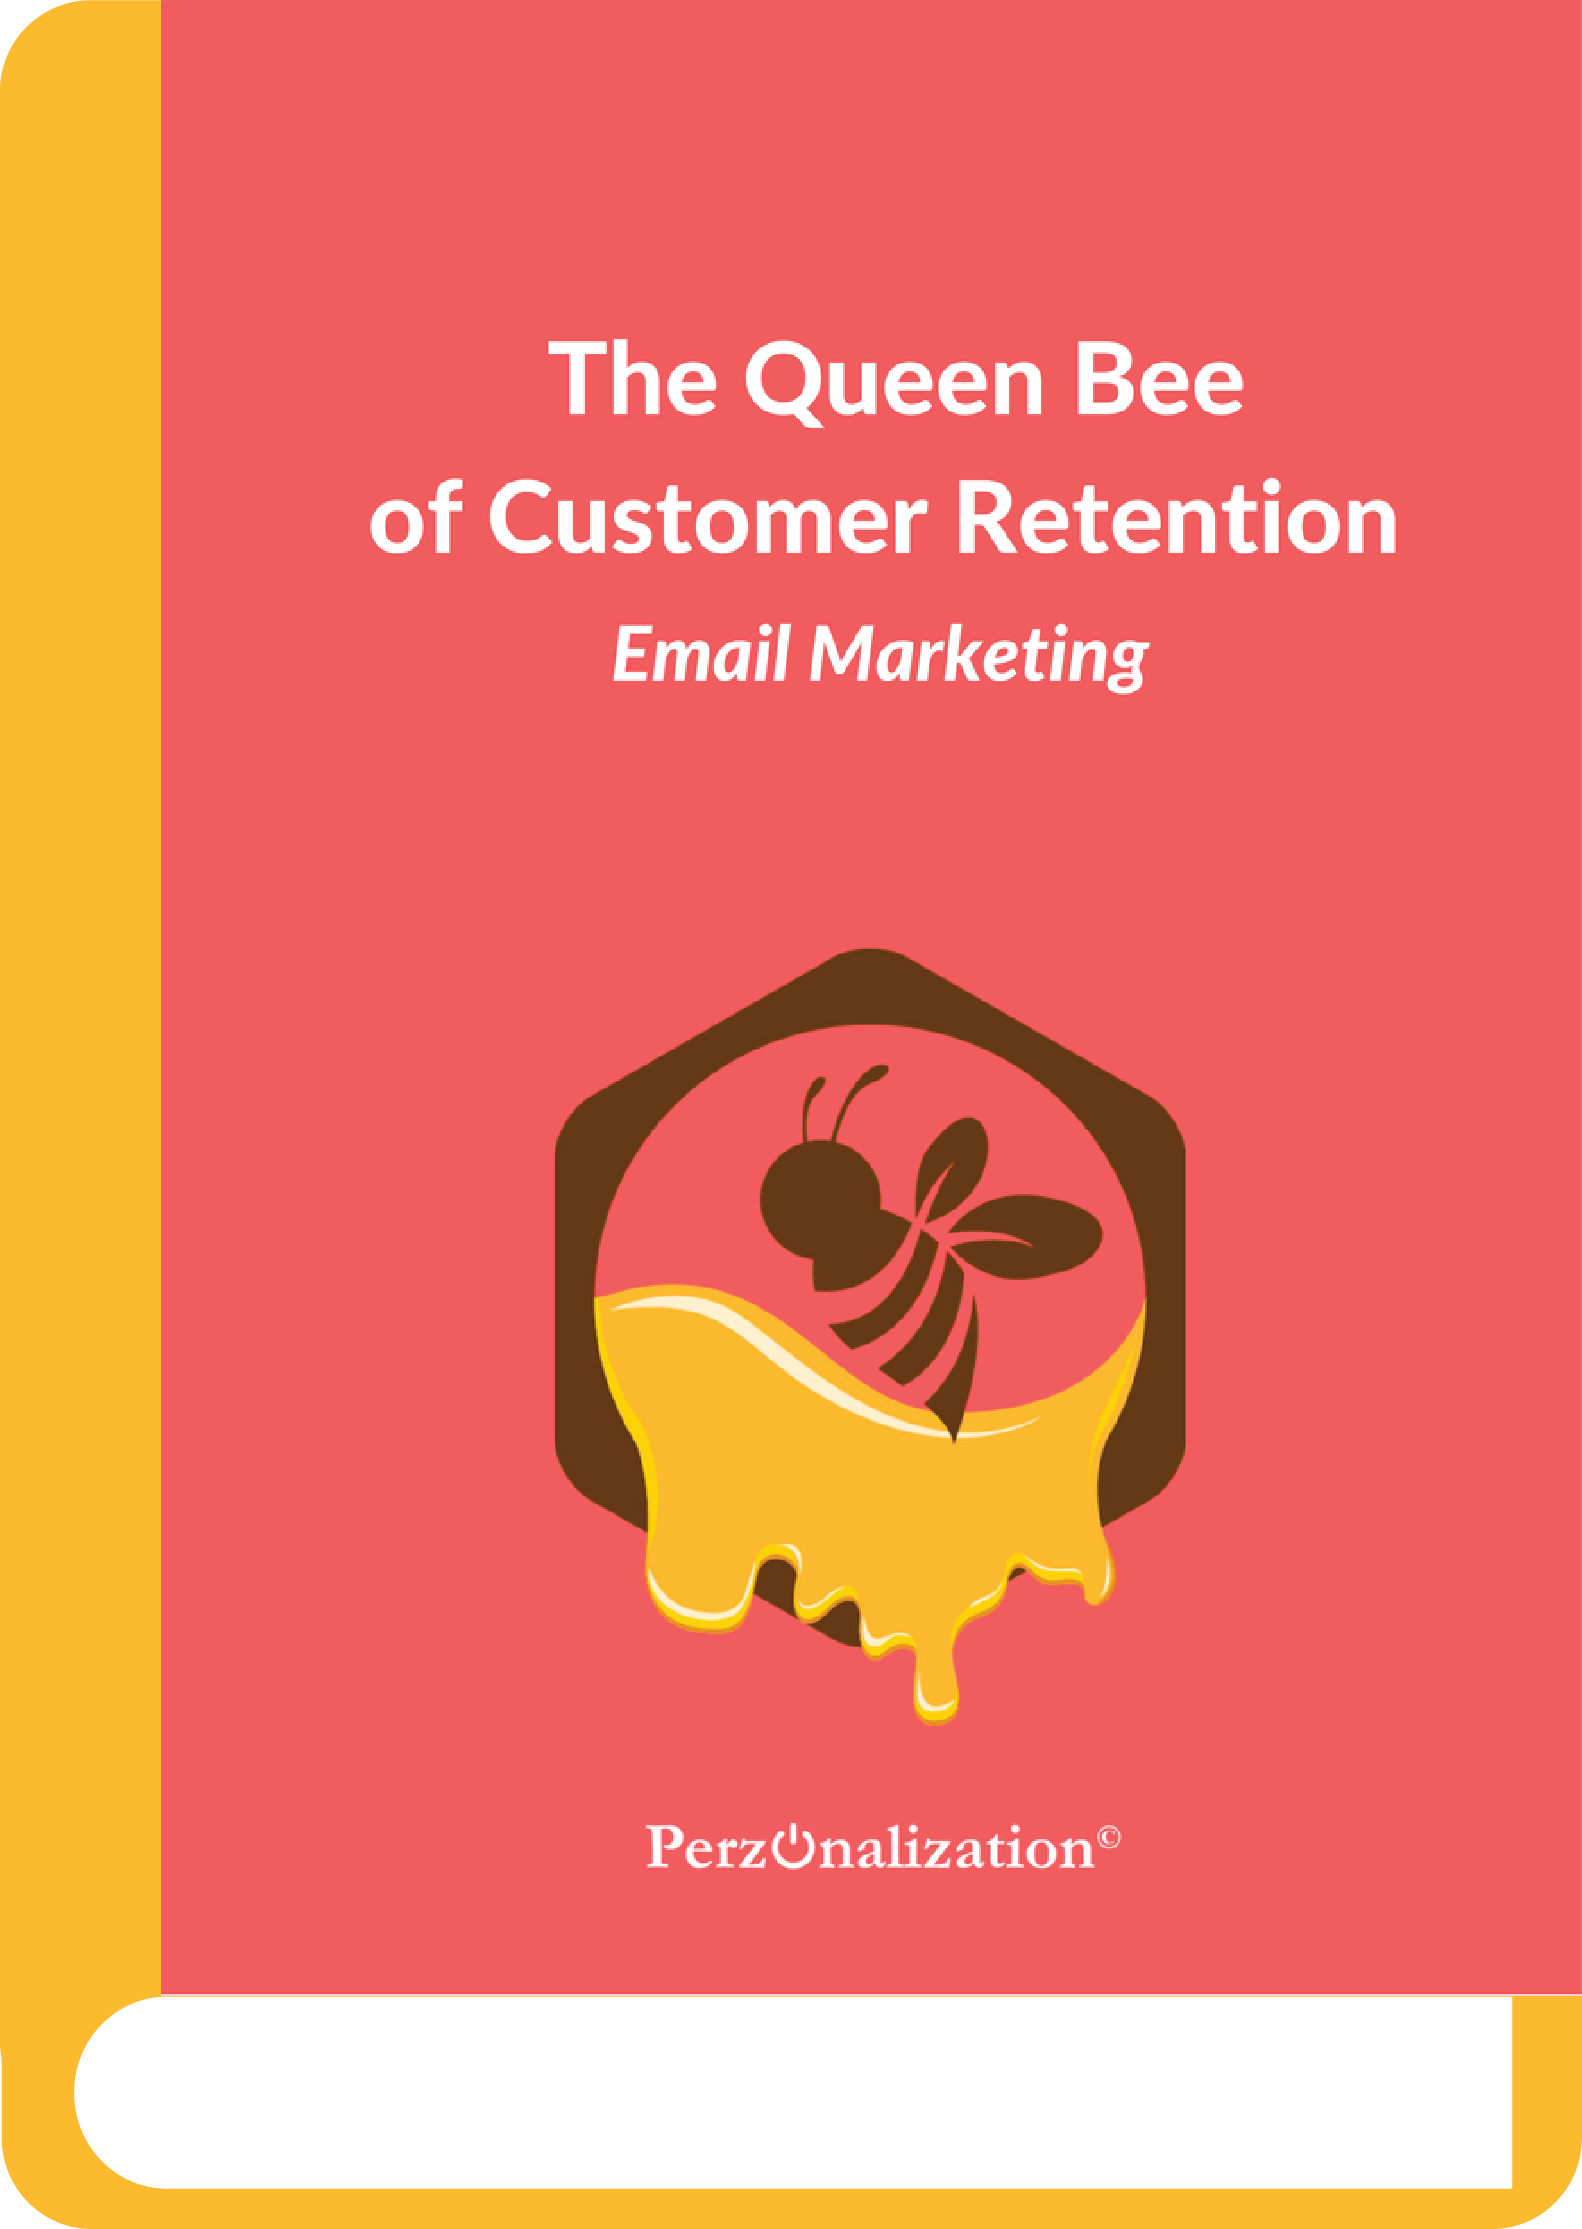 Did you know that 80% of businesses rely on email marketing to retain customers? Coupled with AI powered personalization, it can ensure customer retention.